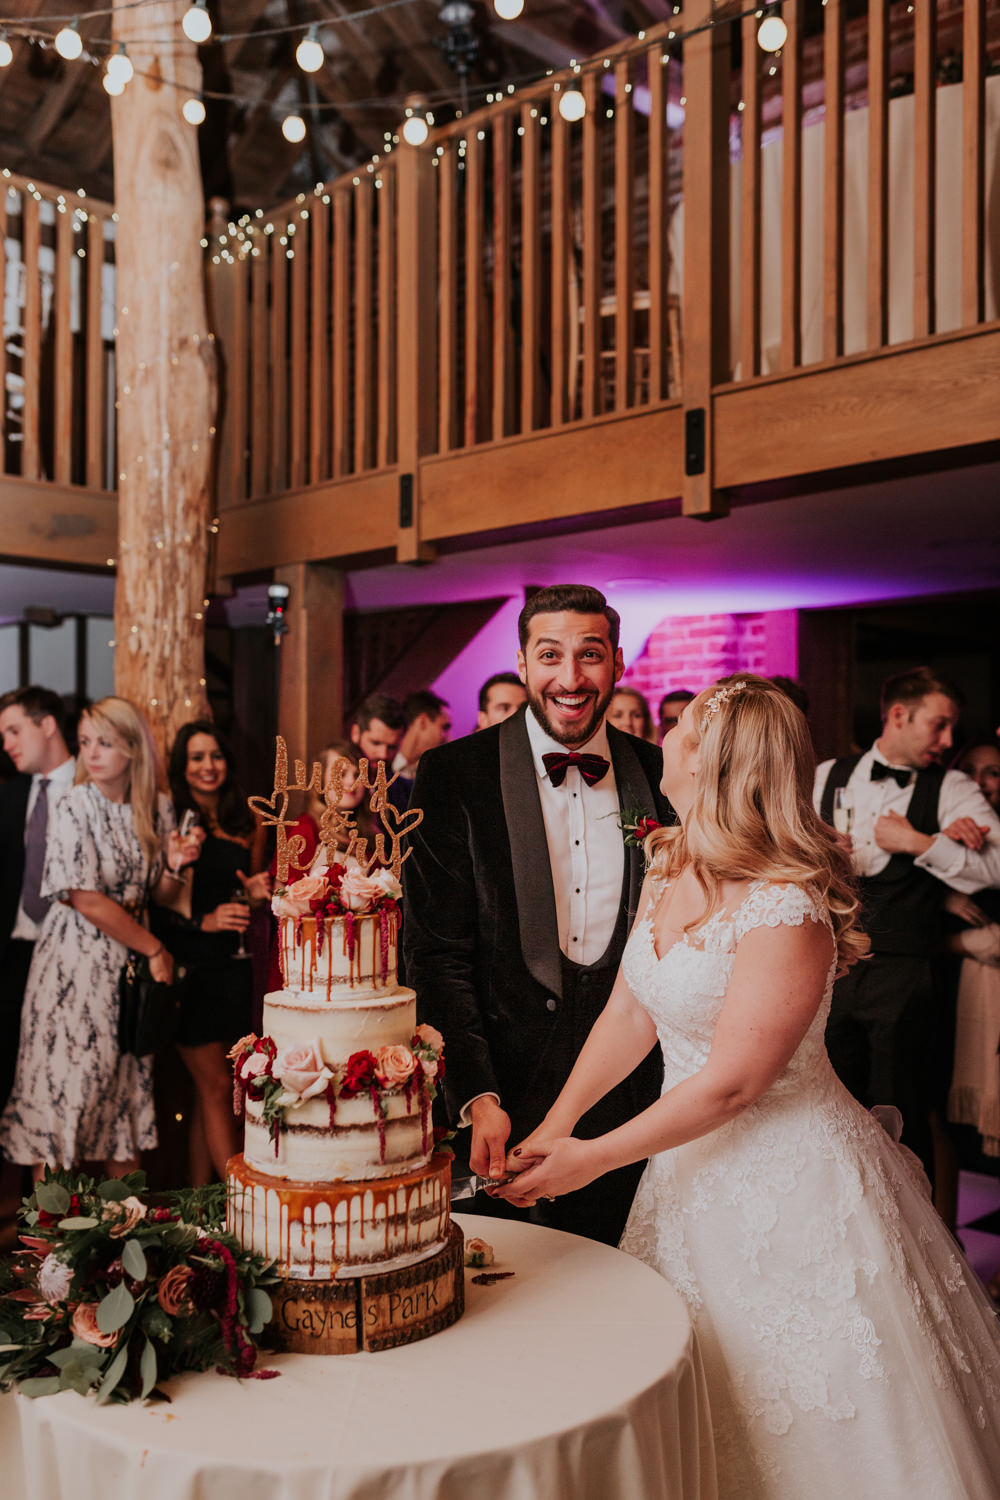 Bride Bridal Cap Sleeve Lace Overlay Dress Gown Velvet Tuxedo Burgundy Bow Tie Groom Drip Cake Cutting Gaynes Park Wedding Kate Gray Photography